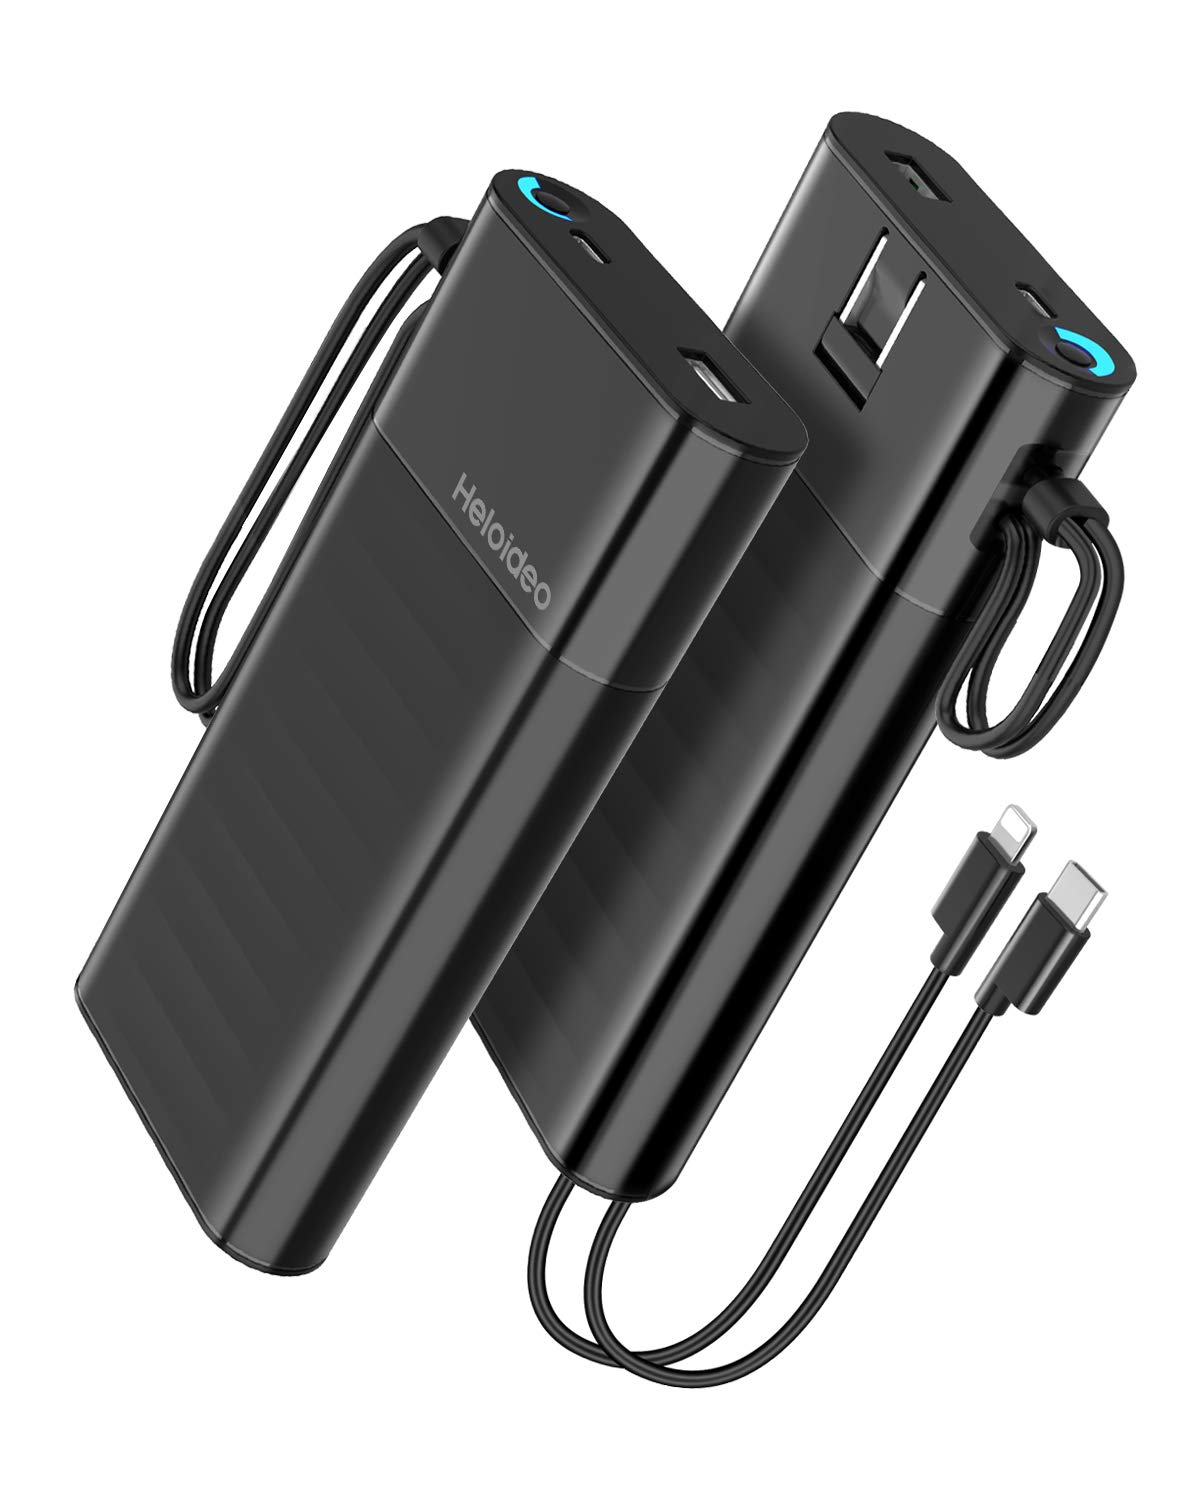 Heloideo 20000mAh Portable Power Bank External Battery Pack Charger Fast Charge QC3.0 PD 18W Total 5.1A 28.5W Built-in AC Wall Plug,Built in Cables Compatible iPhone Xs/XS Max / 8 / Plus, Pixel, by Heloideo